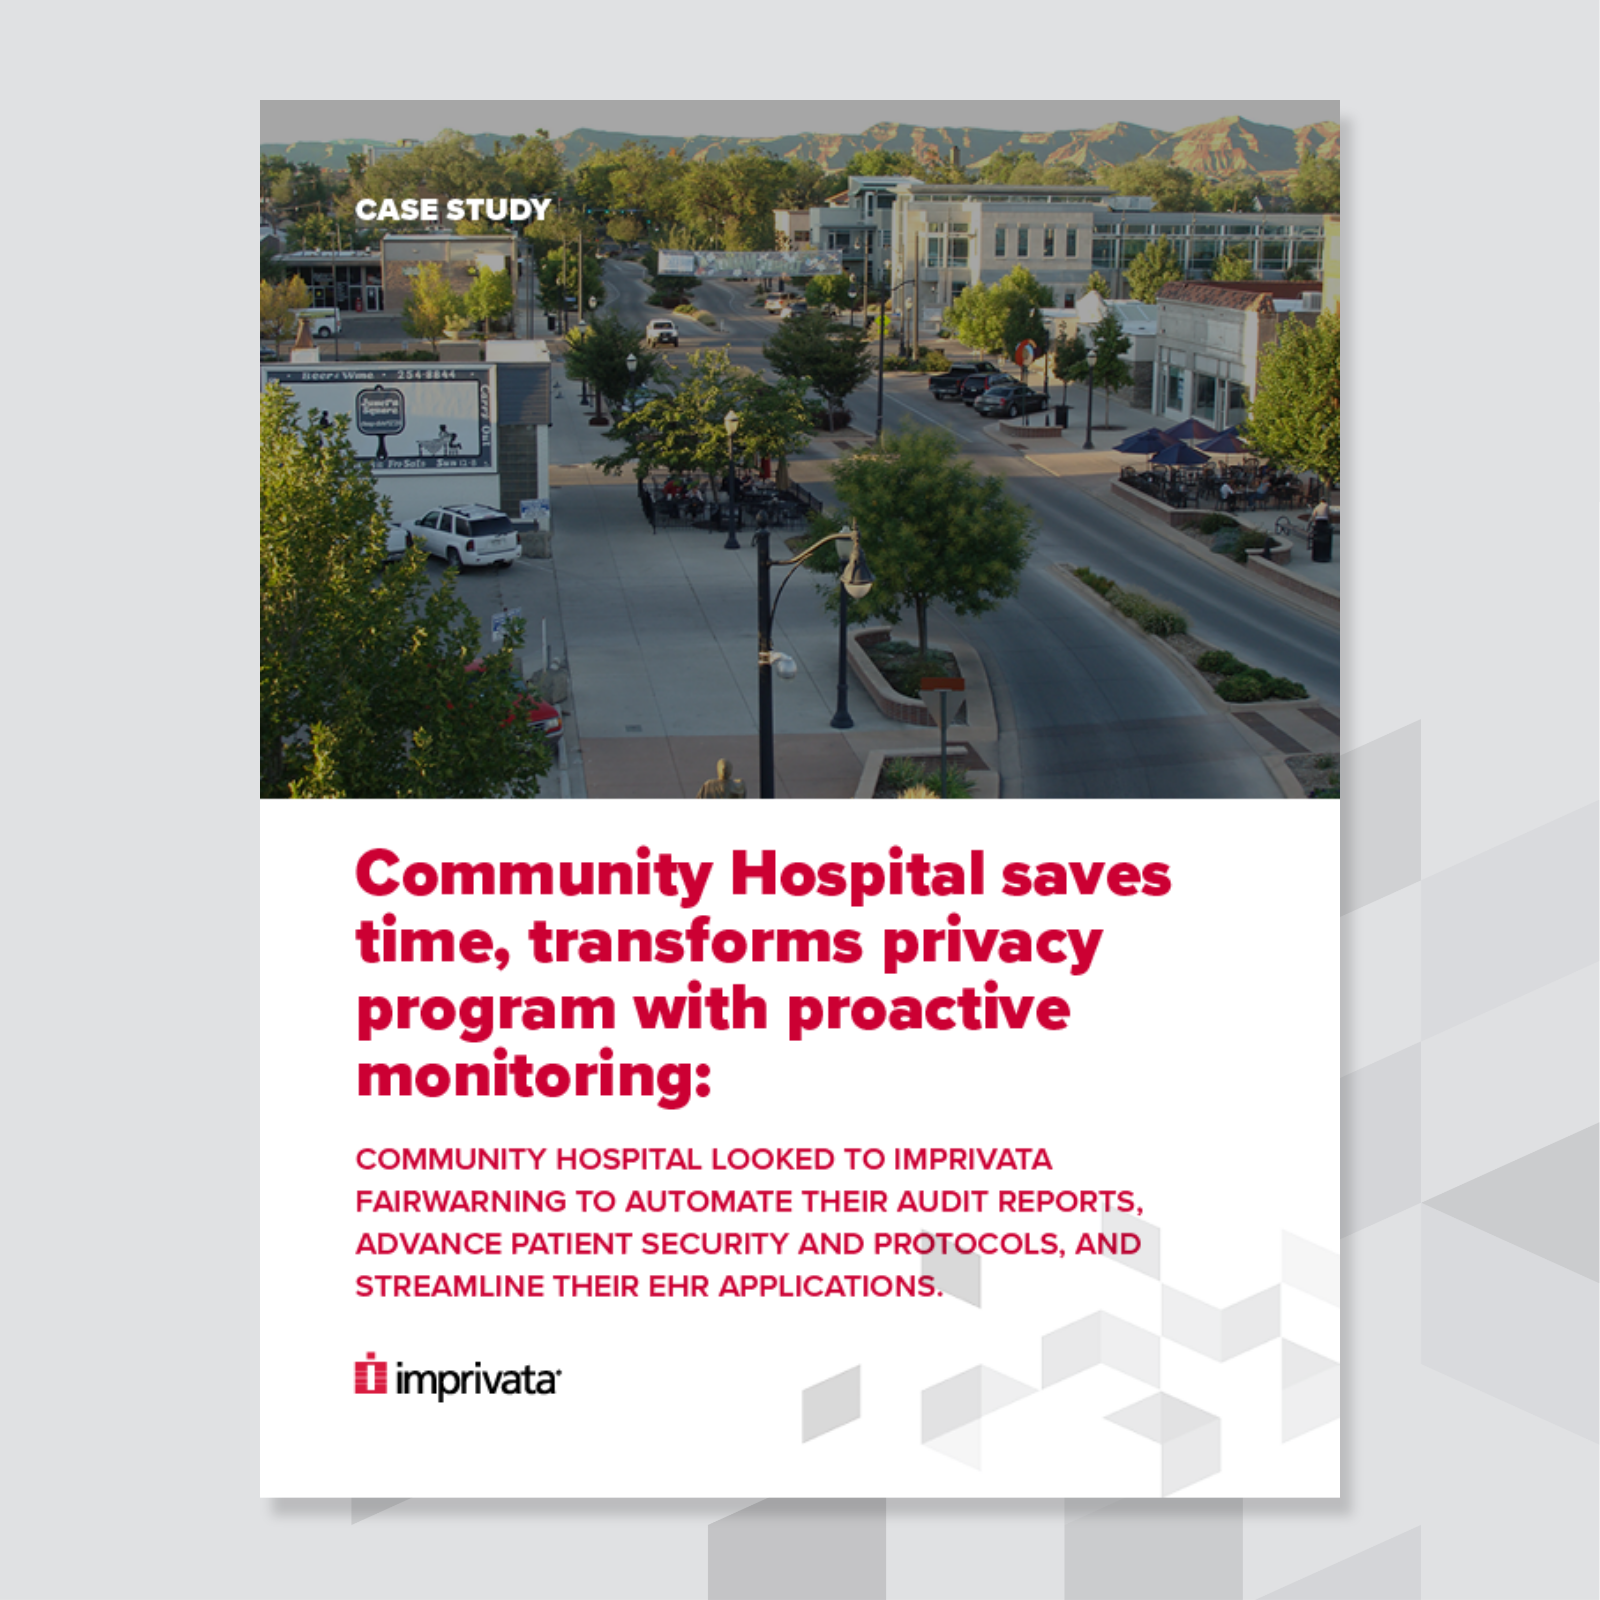 Community Hospital case study cover